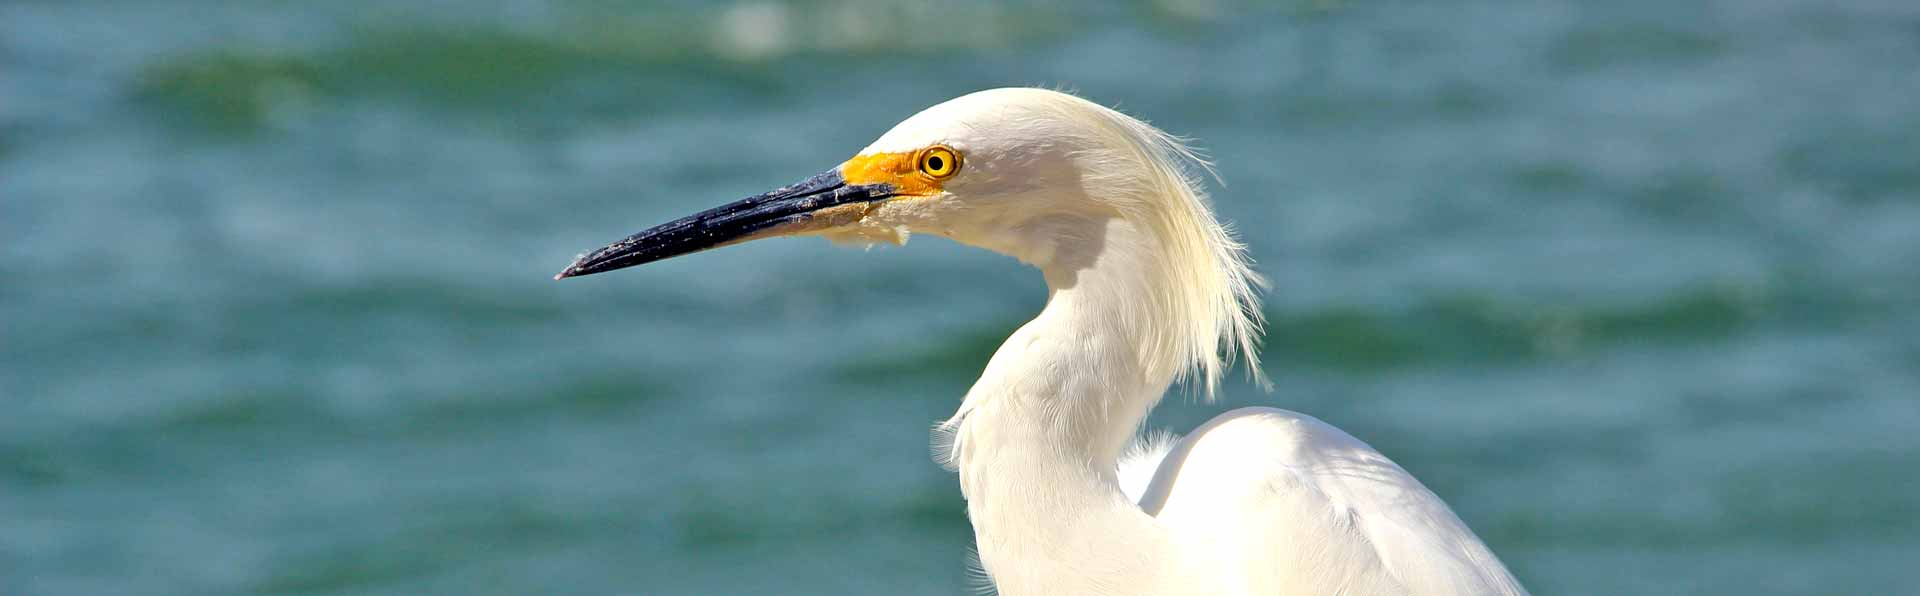 Florida egret bird